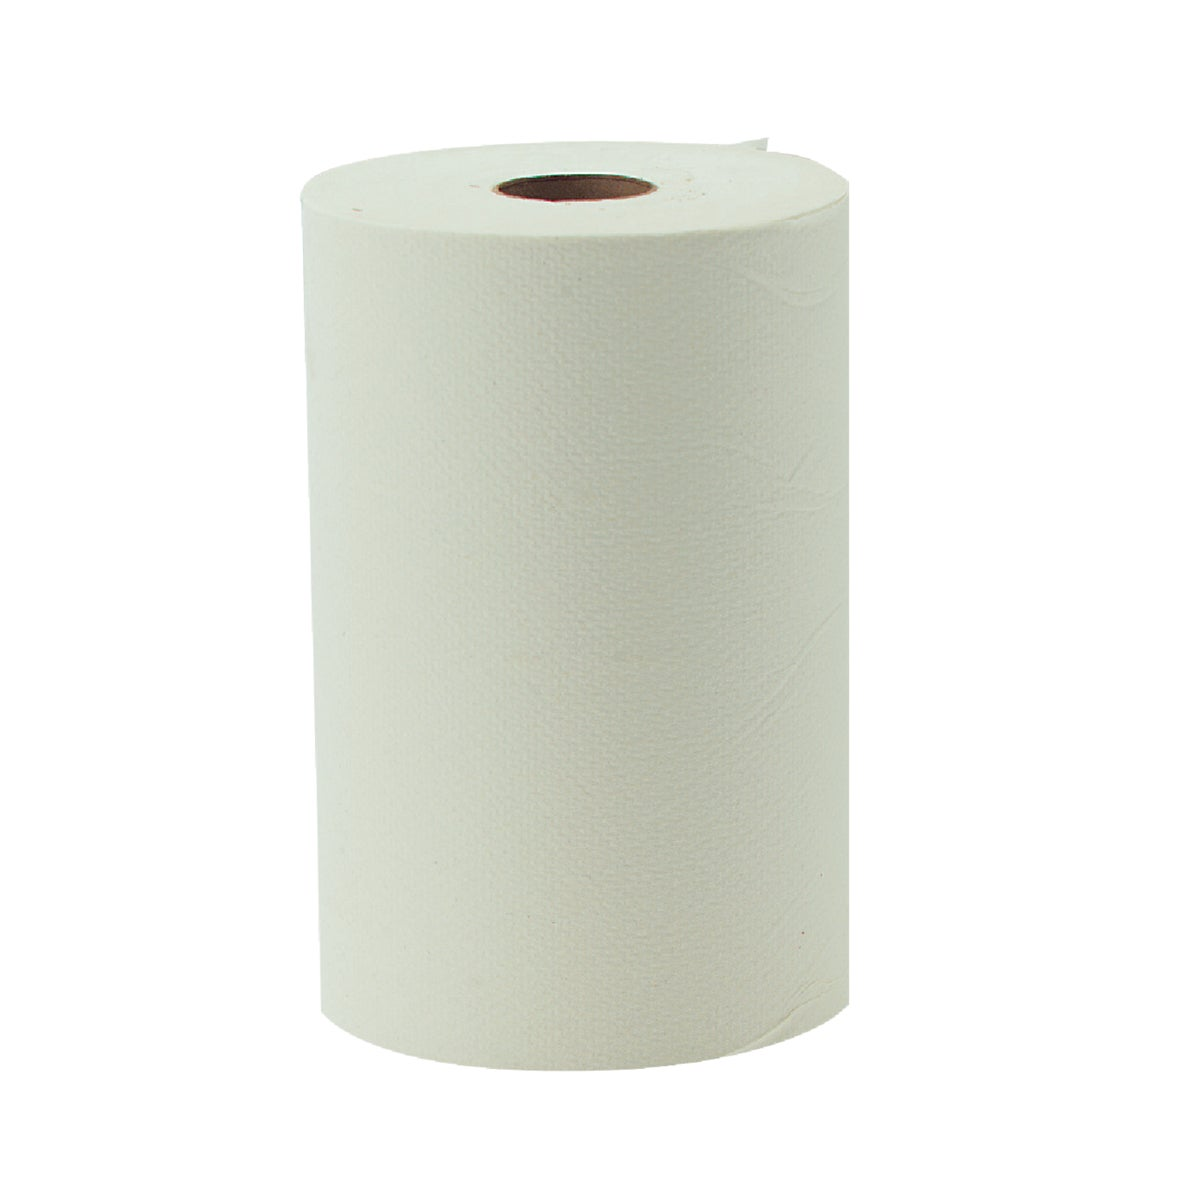 HARD ROLL PAPER TOWELS - KCC02068 by Lagassesweet  Incom